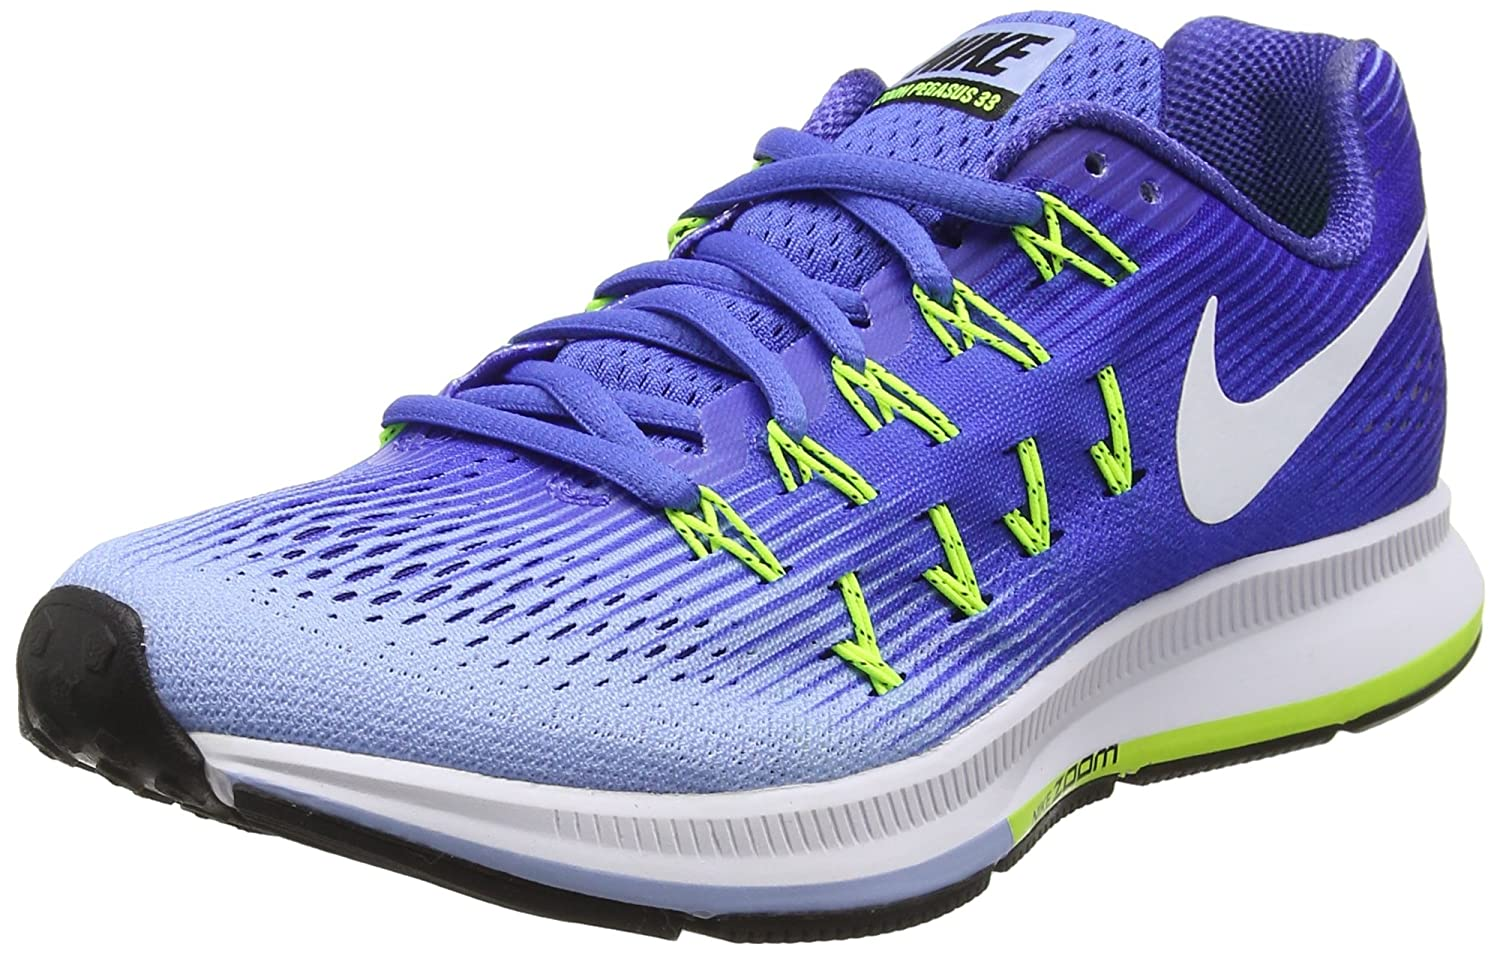 low cost c44dd 2f8d1 Nike Women s s Air Zoom Pegasus 33 Running Shoes  Amazon.co.uk  Shoes   Bags